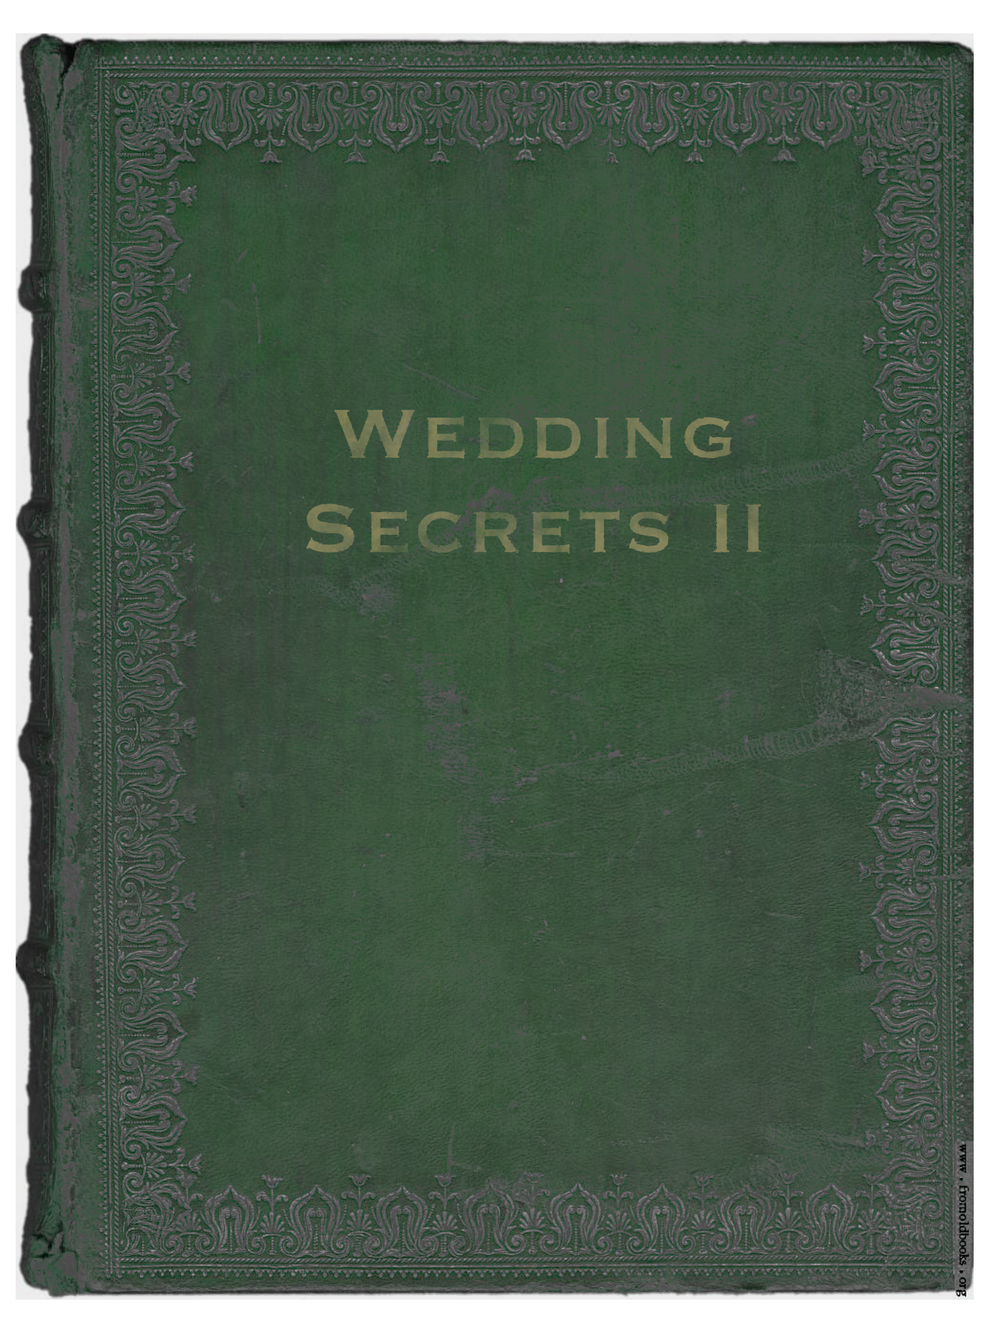 WEDDING SECRETS II